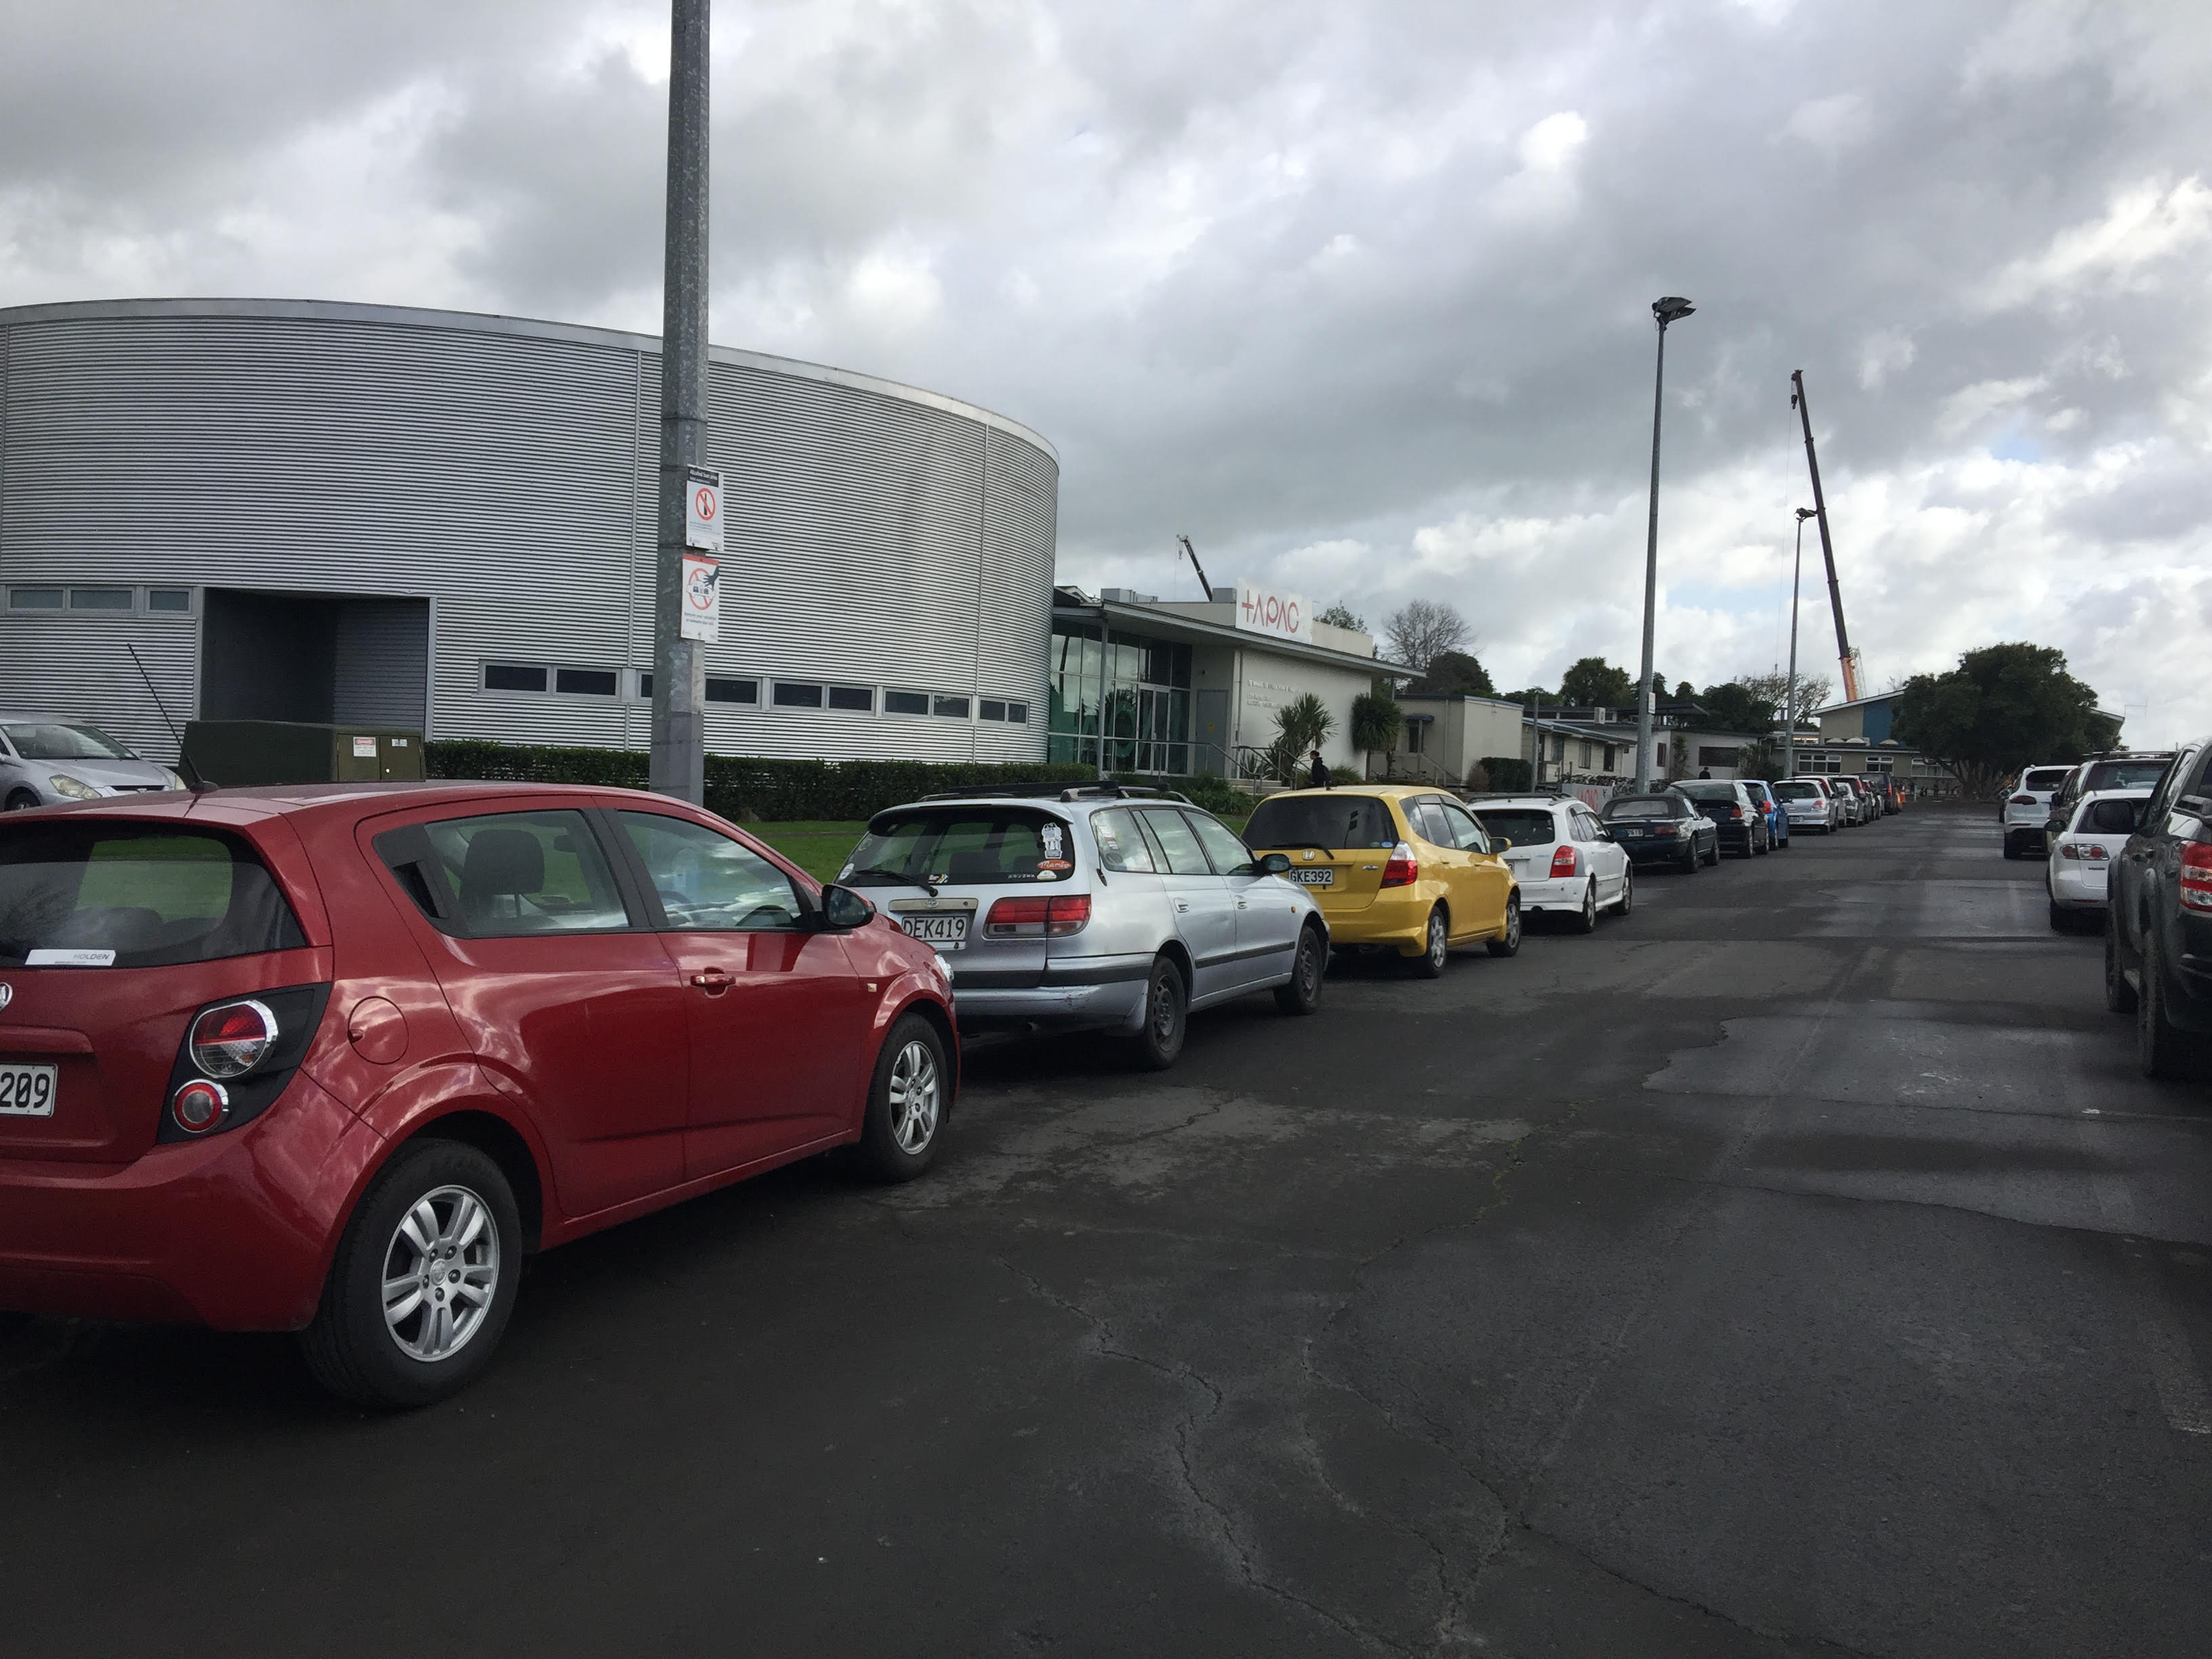 Carparking & Safety Concerns At WSC/NPOW